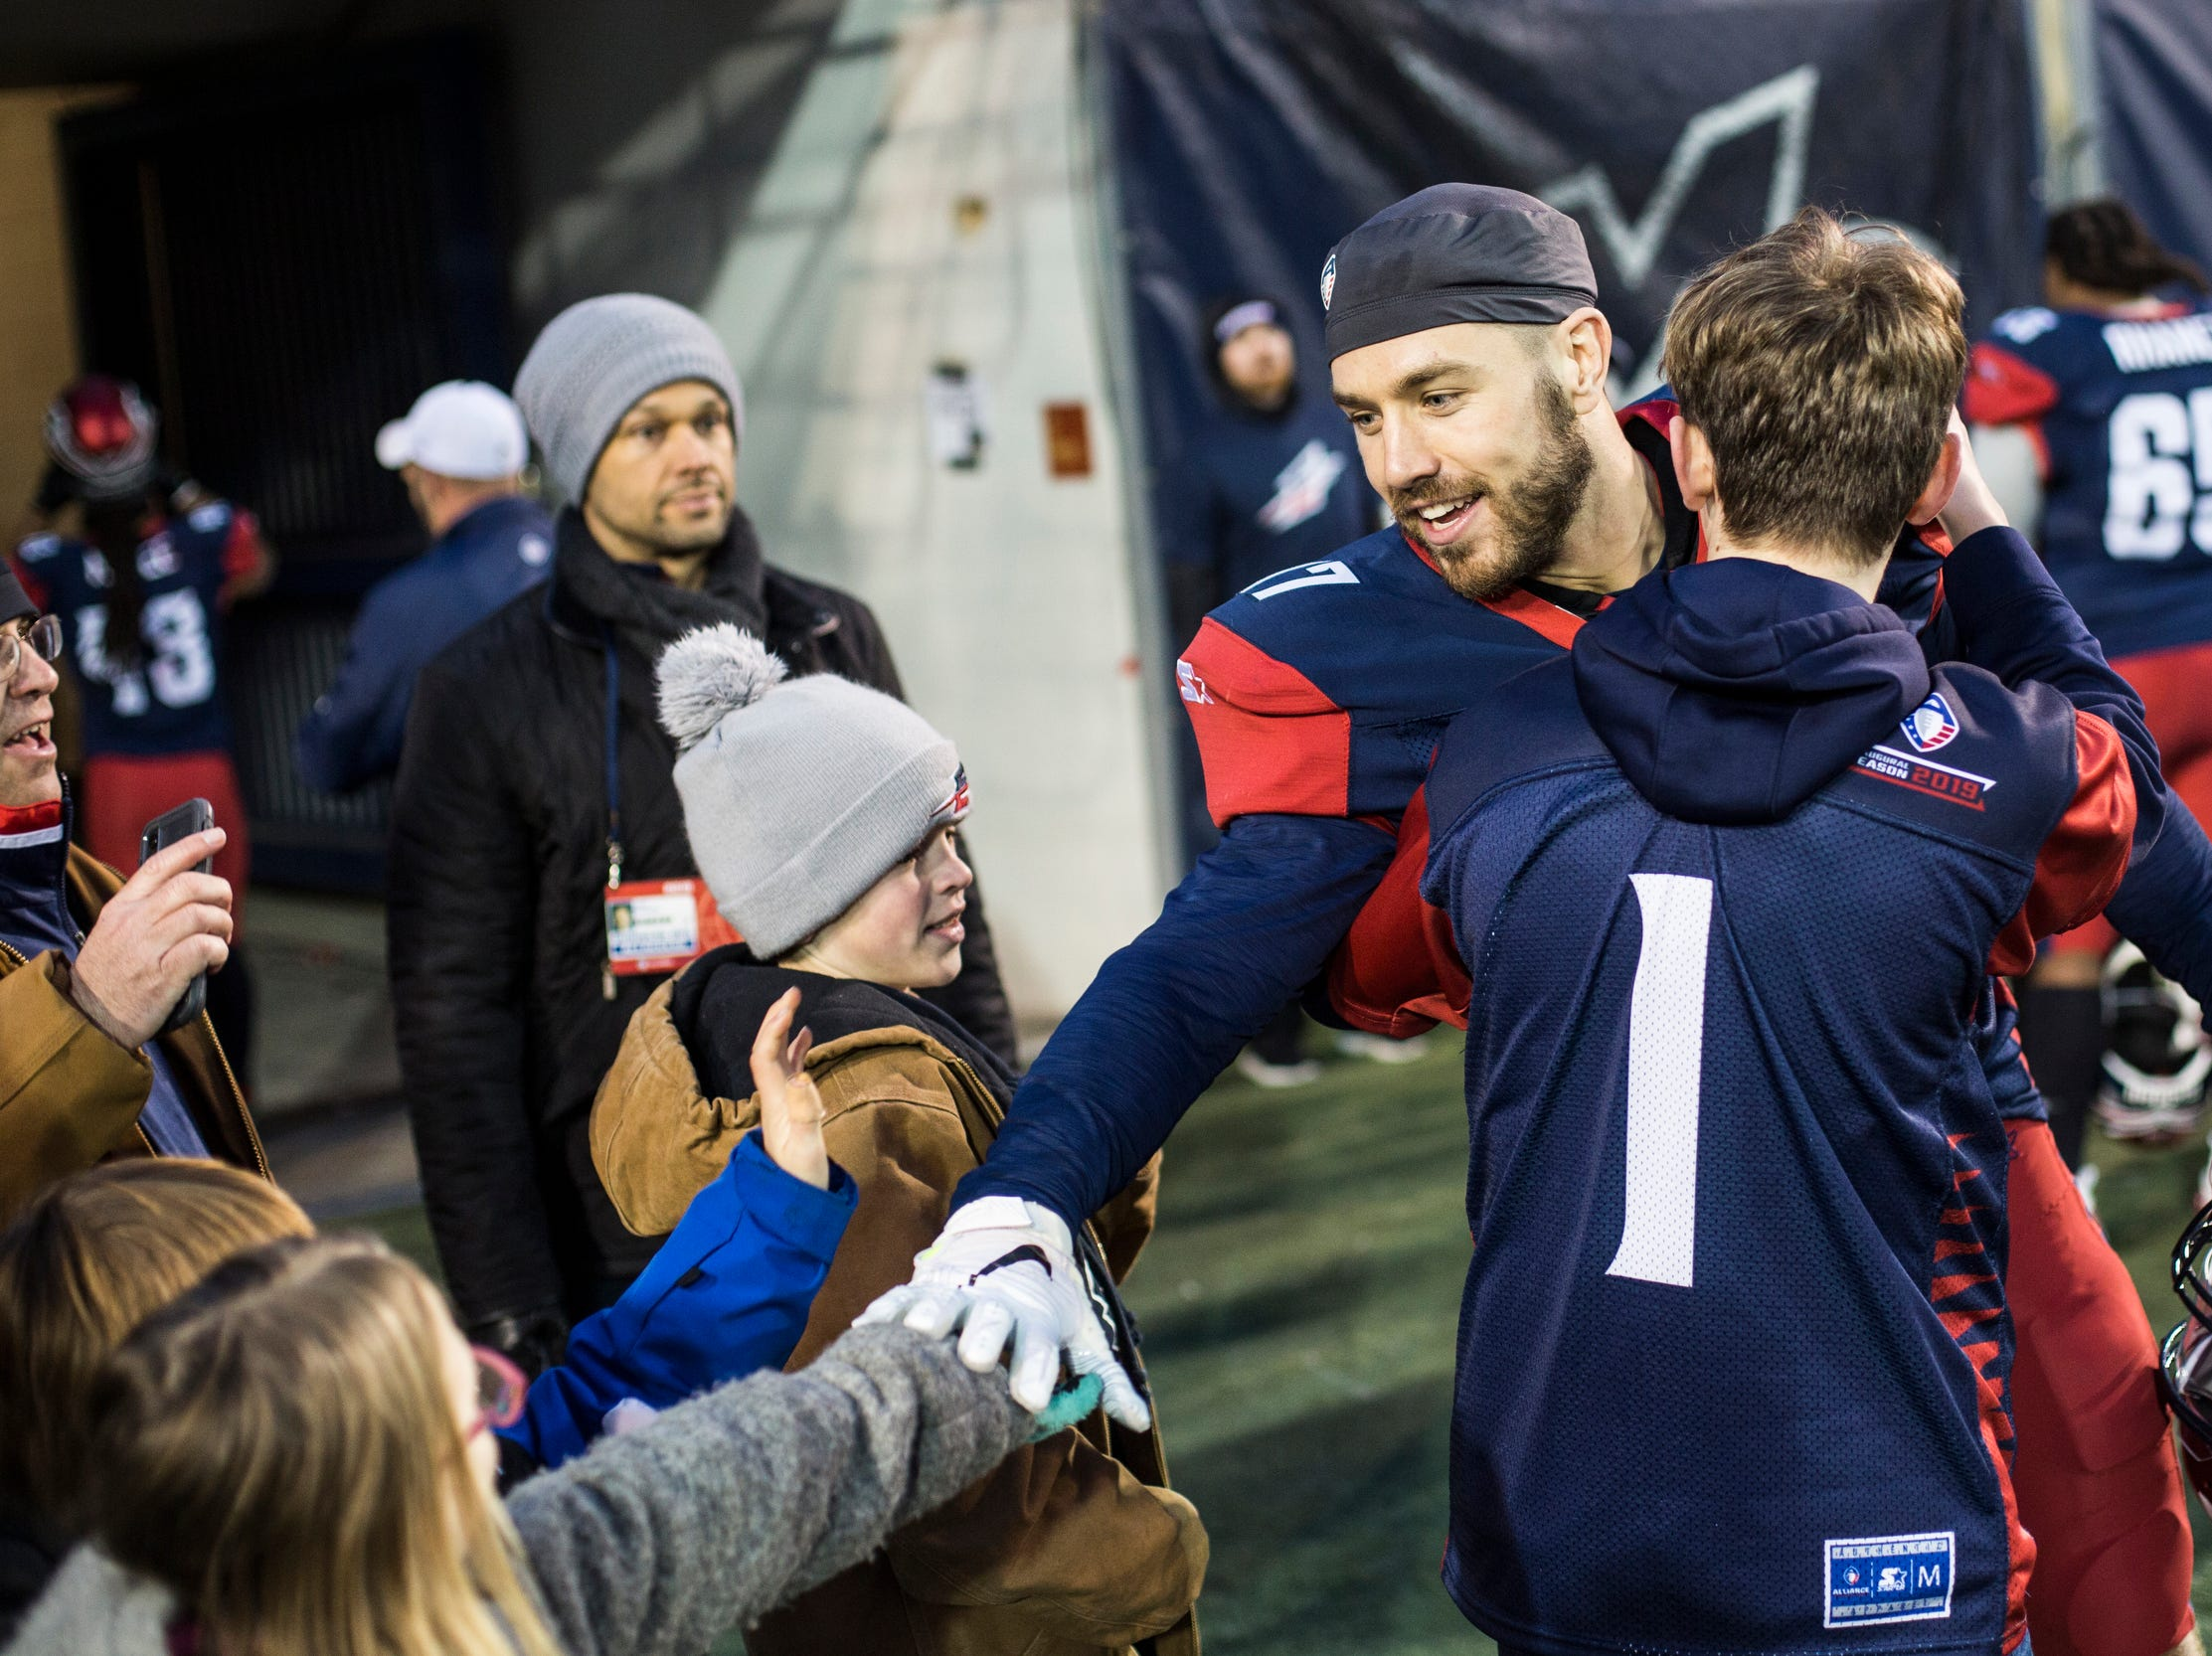 March 02, 2019 - Memphis Express' Reece Horn interacts with fans after the Memphis Express won Saturday's game against the San Diego Fleet.